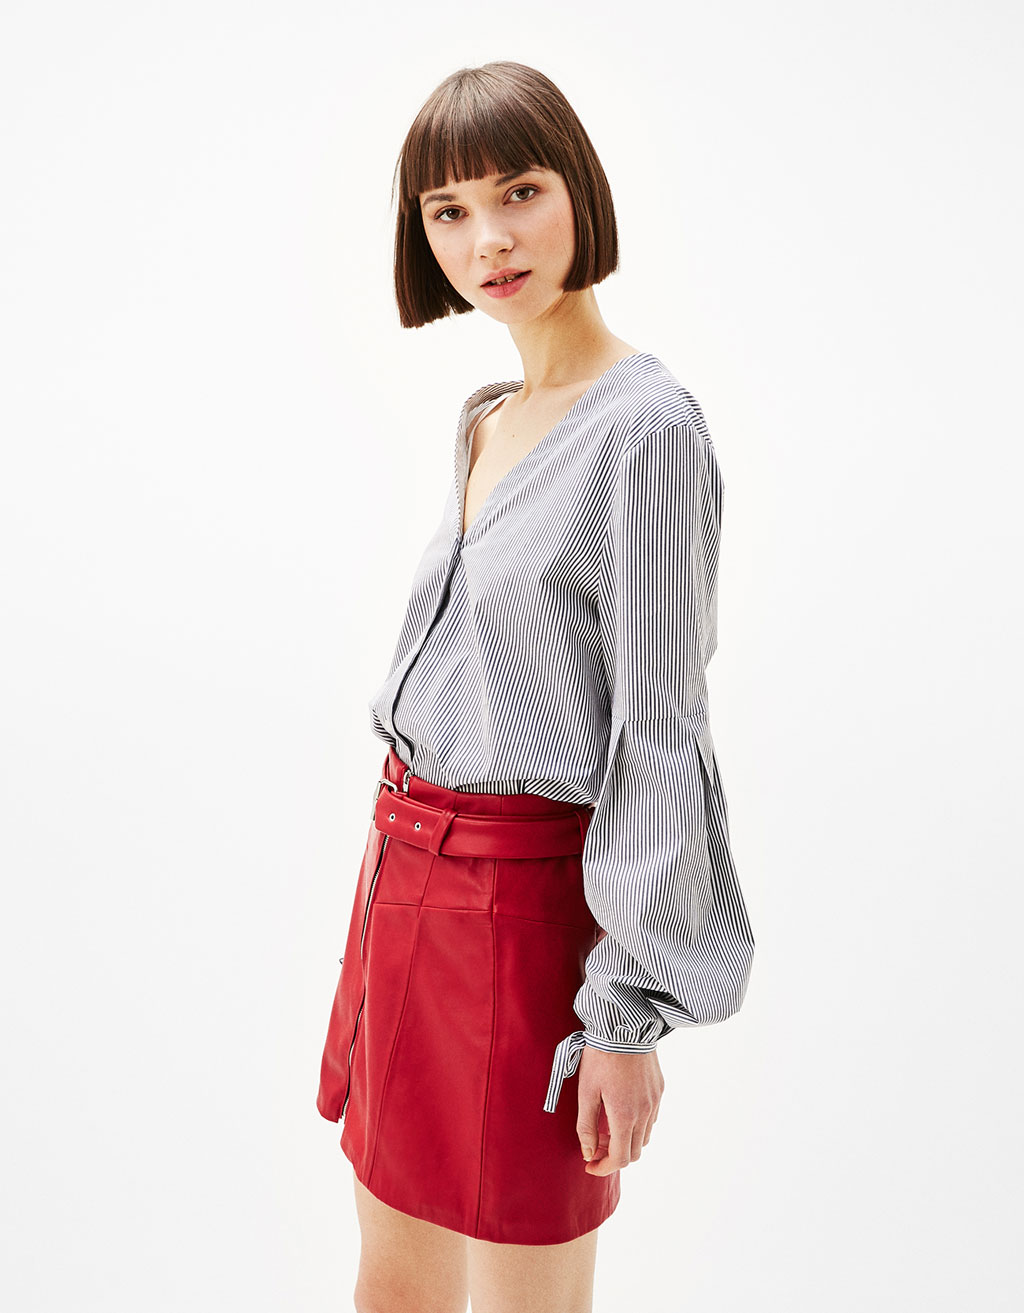 V-neck shirt with puffy sleeves